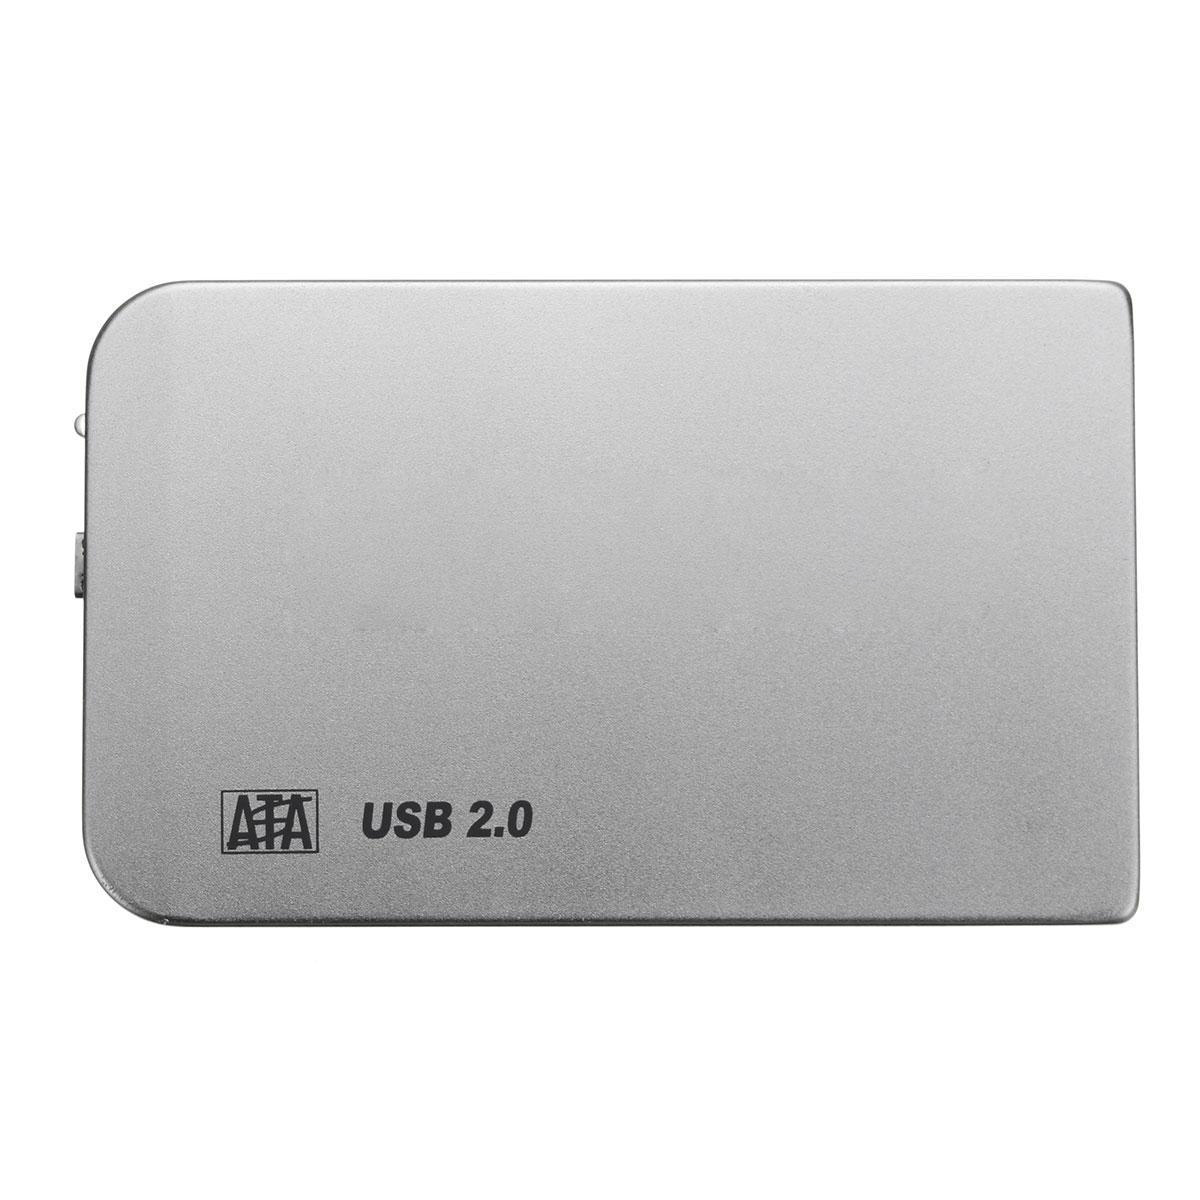 Sitemap Mdisk Kabel Charger And Data Usb Micro High Speed Led G319 New Sale 2 0 External Hard Drive Box Sata 5 Ssd Enclosure Holster